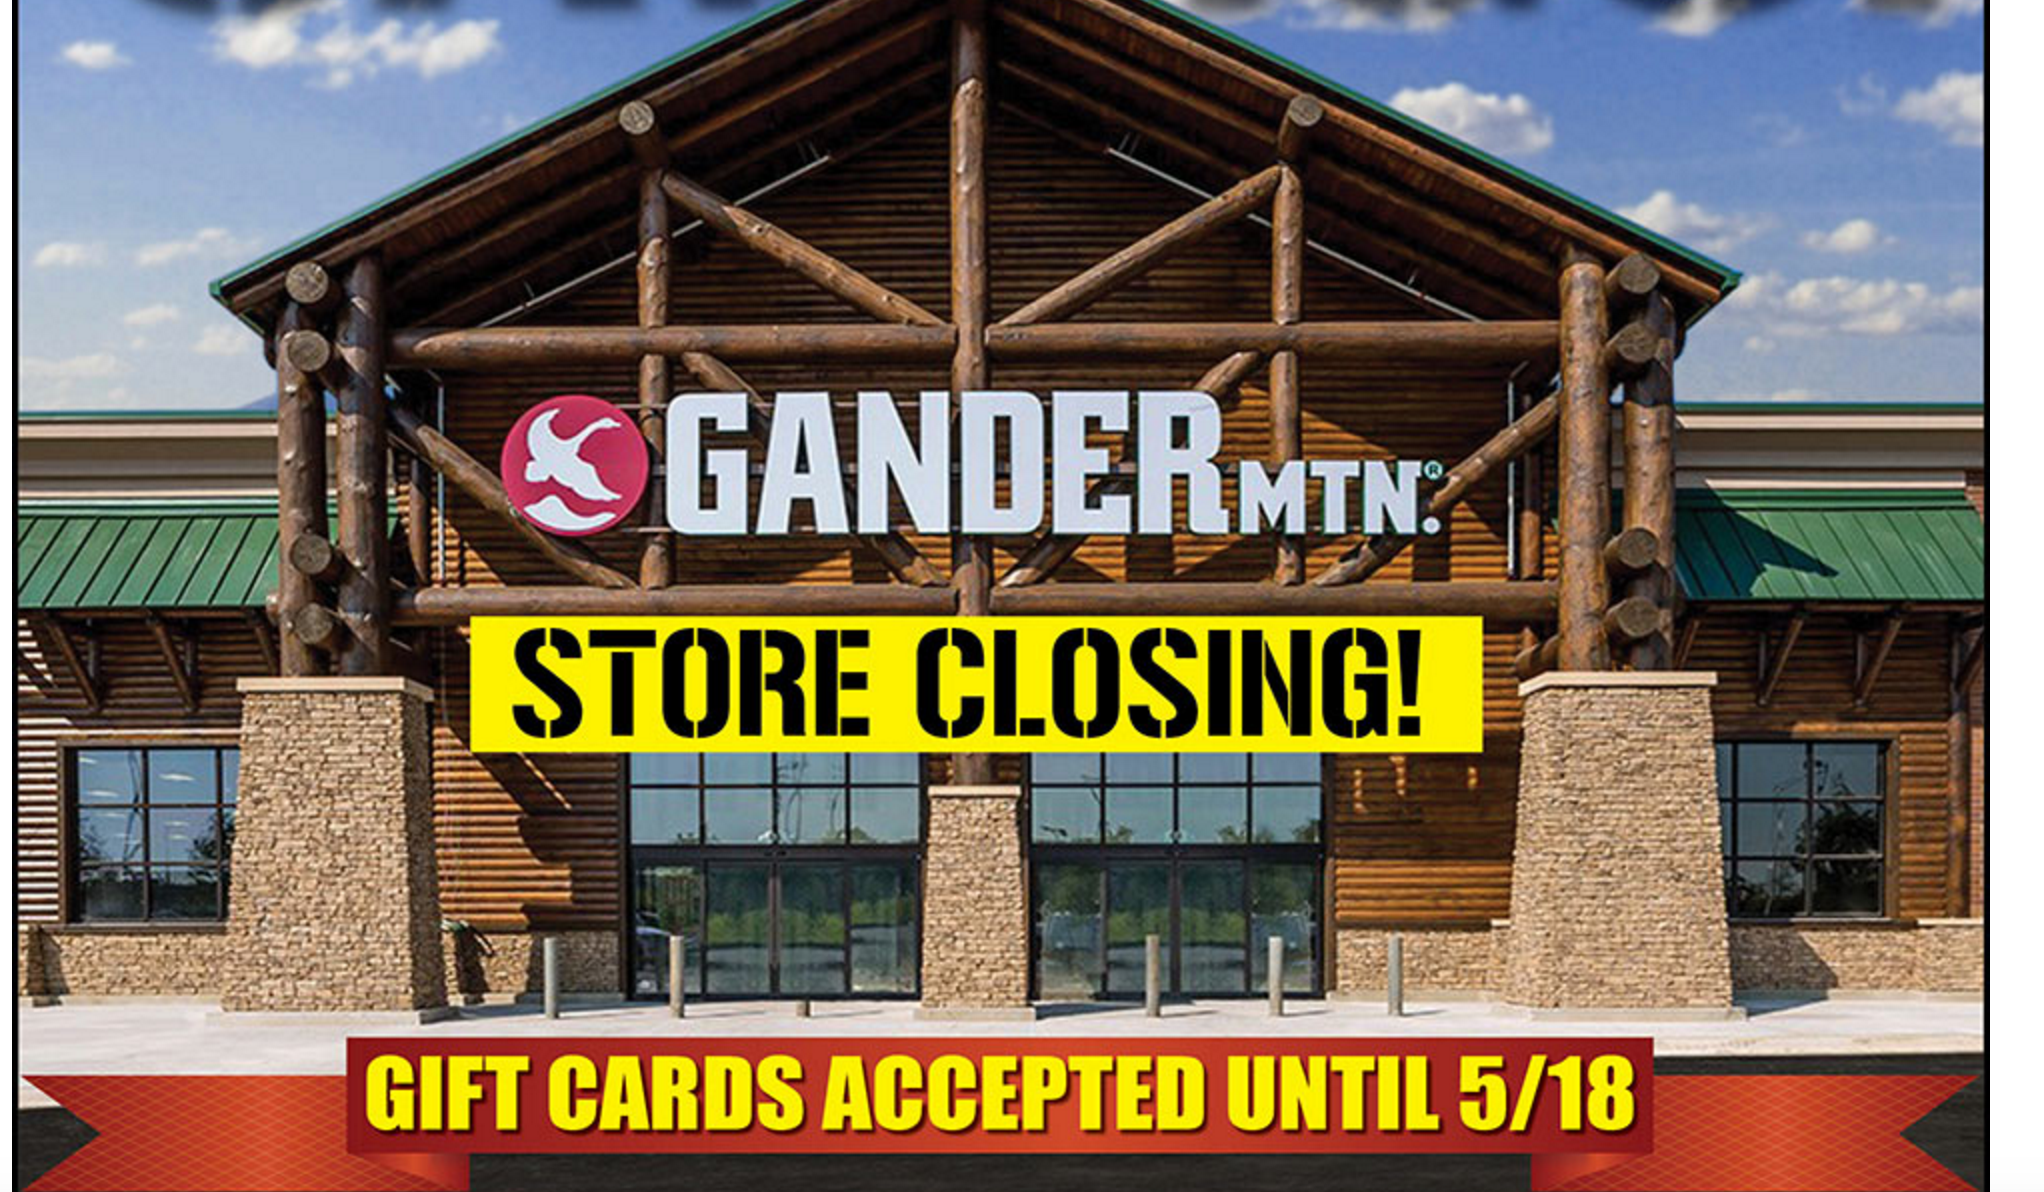 Gander Mountain Advertises That All Stores Are Closing, But They Aren't